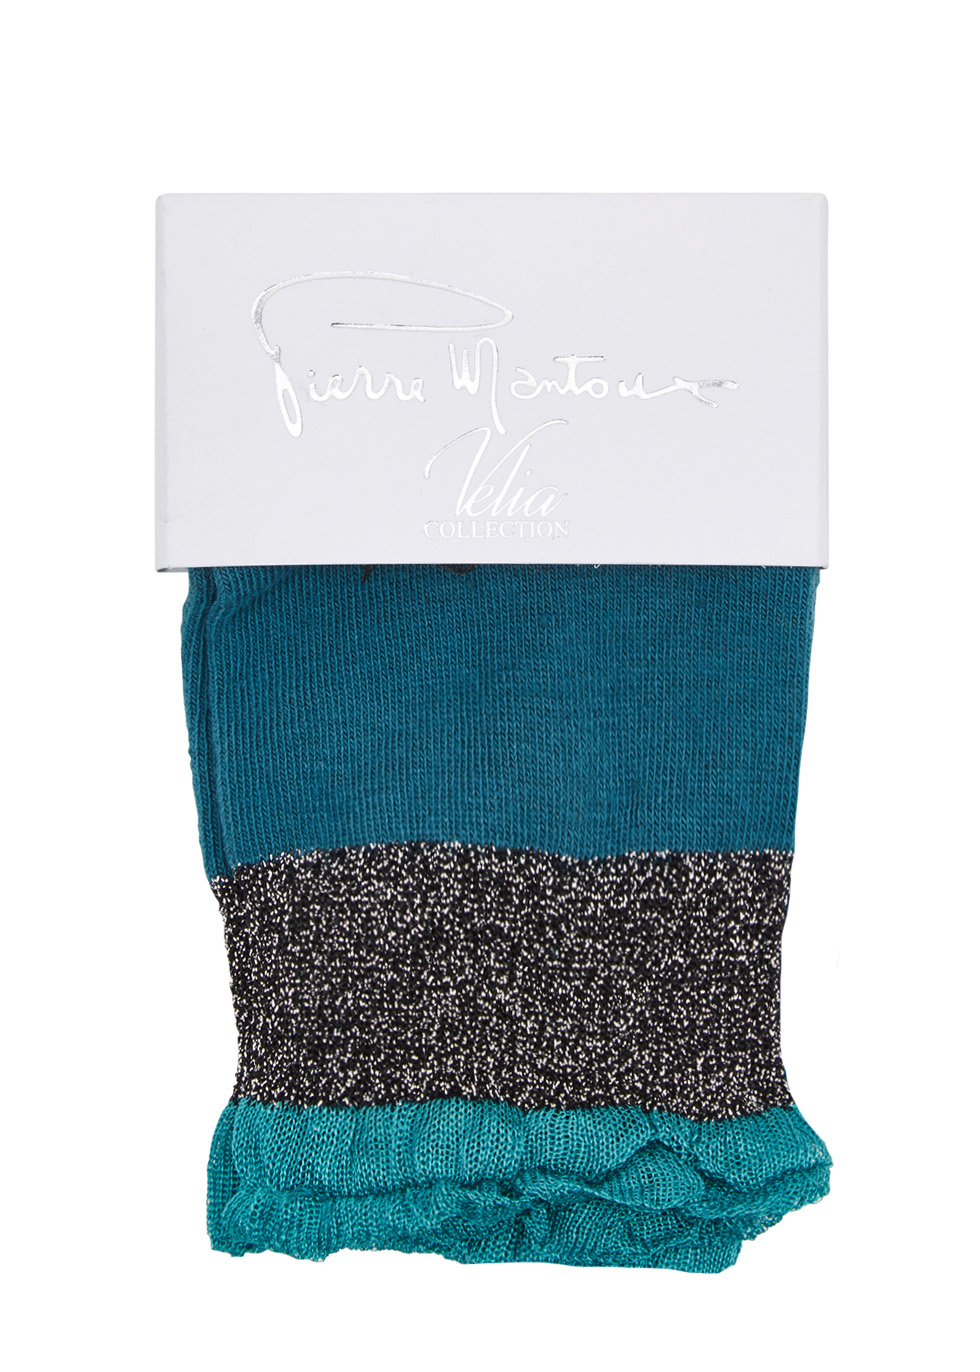 Green ruffle-trimmed cotton blend socks - Pierre Mantoux